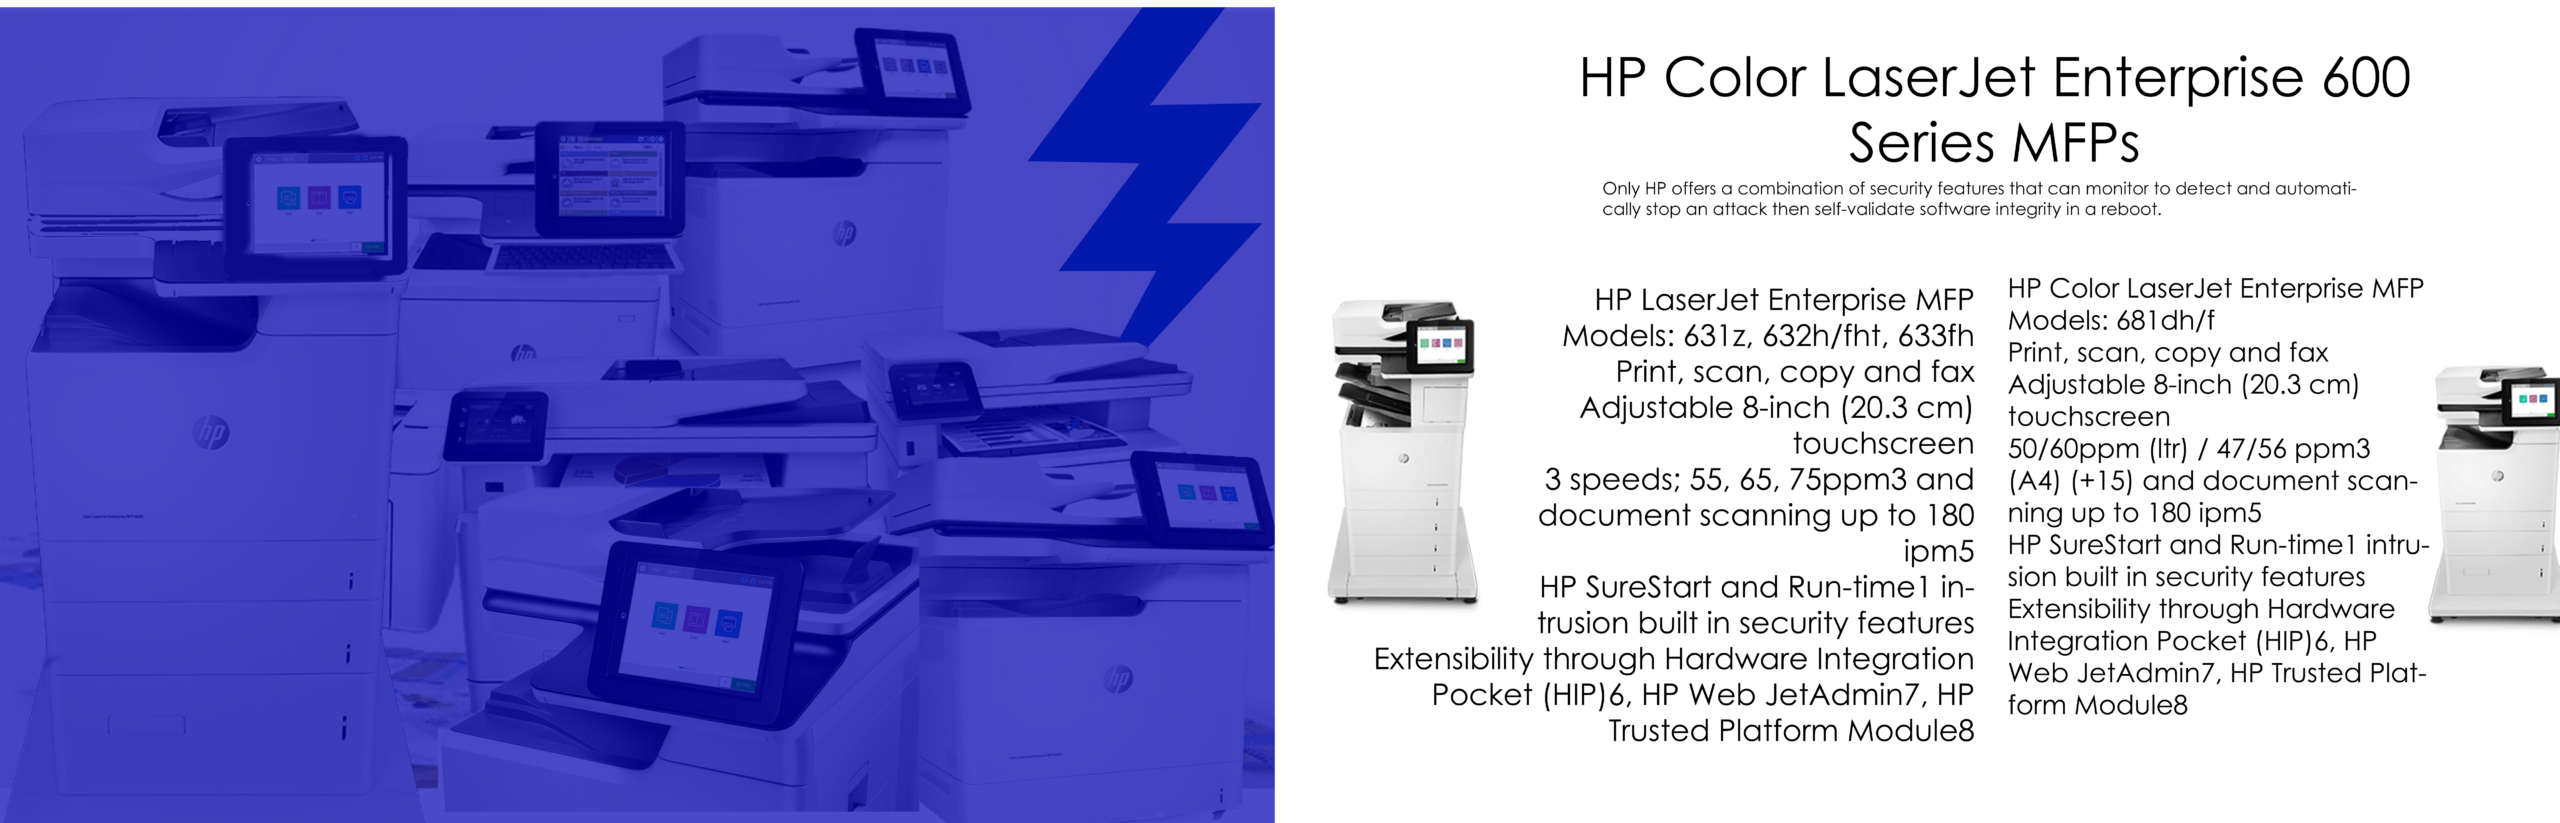 hp-lazerjet-600-series-mfp-HP Printing equipment and supplies in uniontown, pa